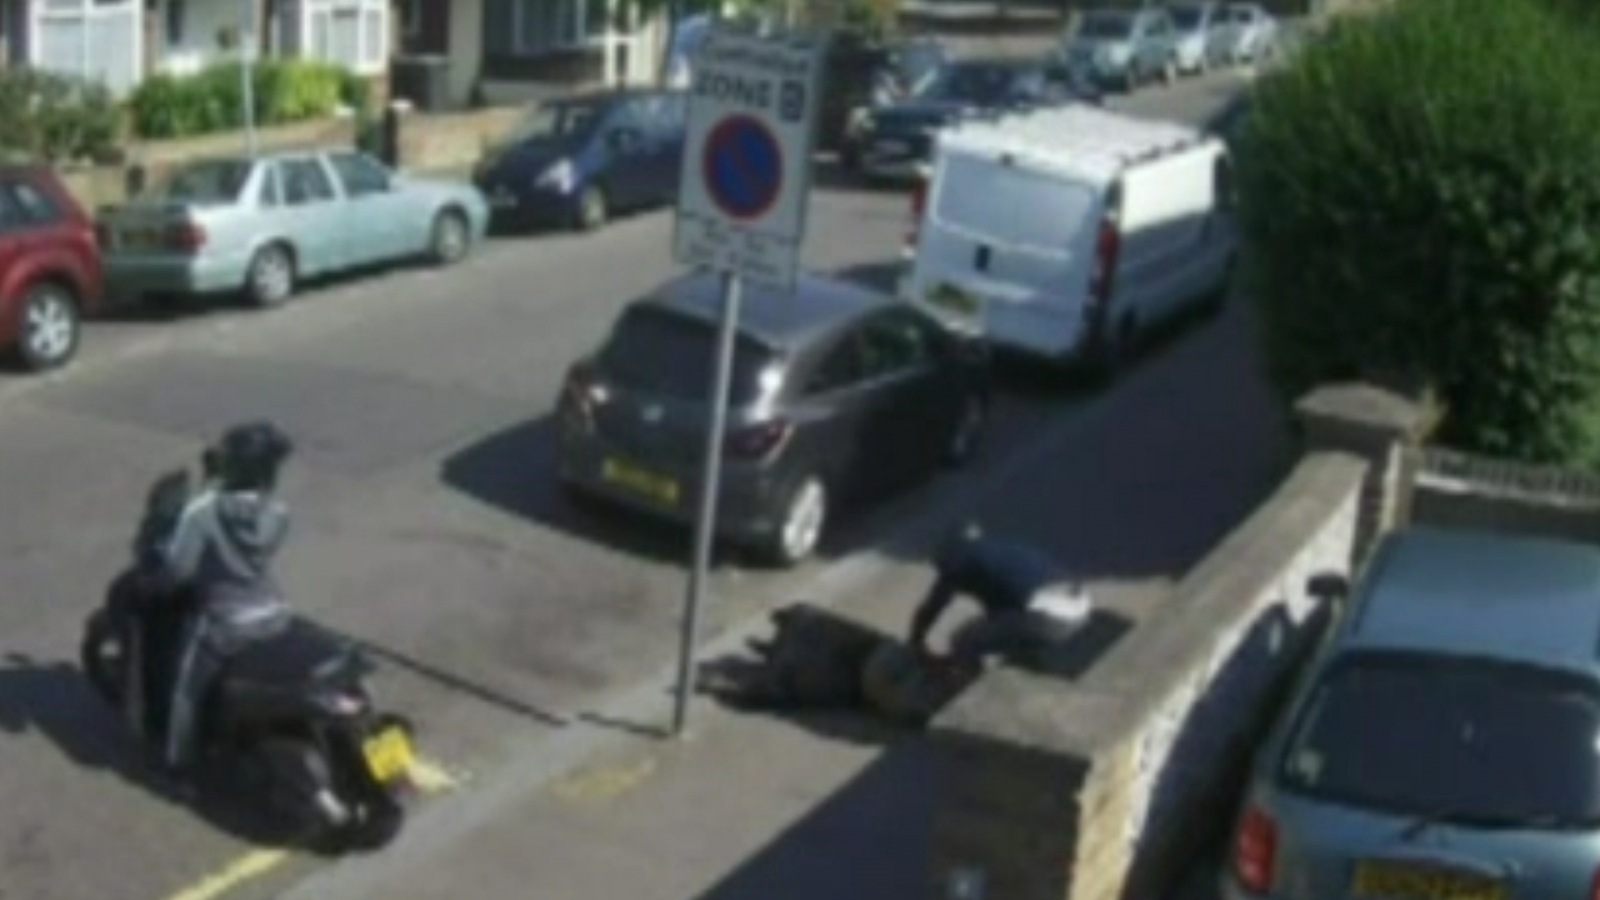 cctv-captures-shocking-robbery-outside-hindu-temple-in-london